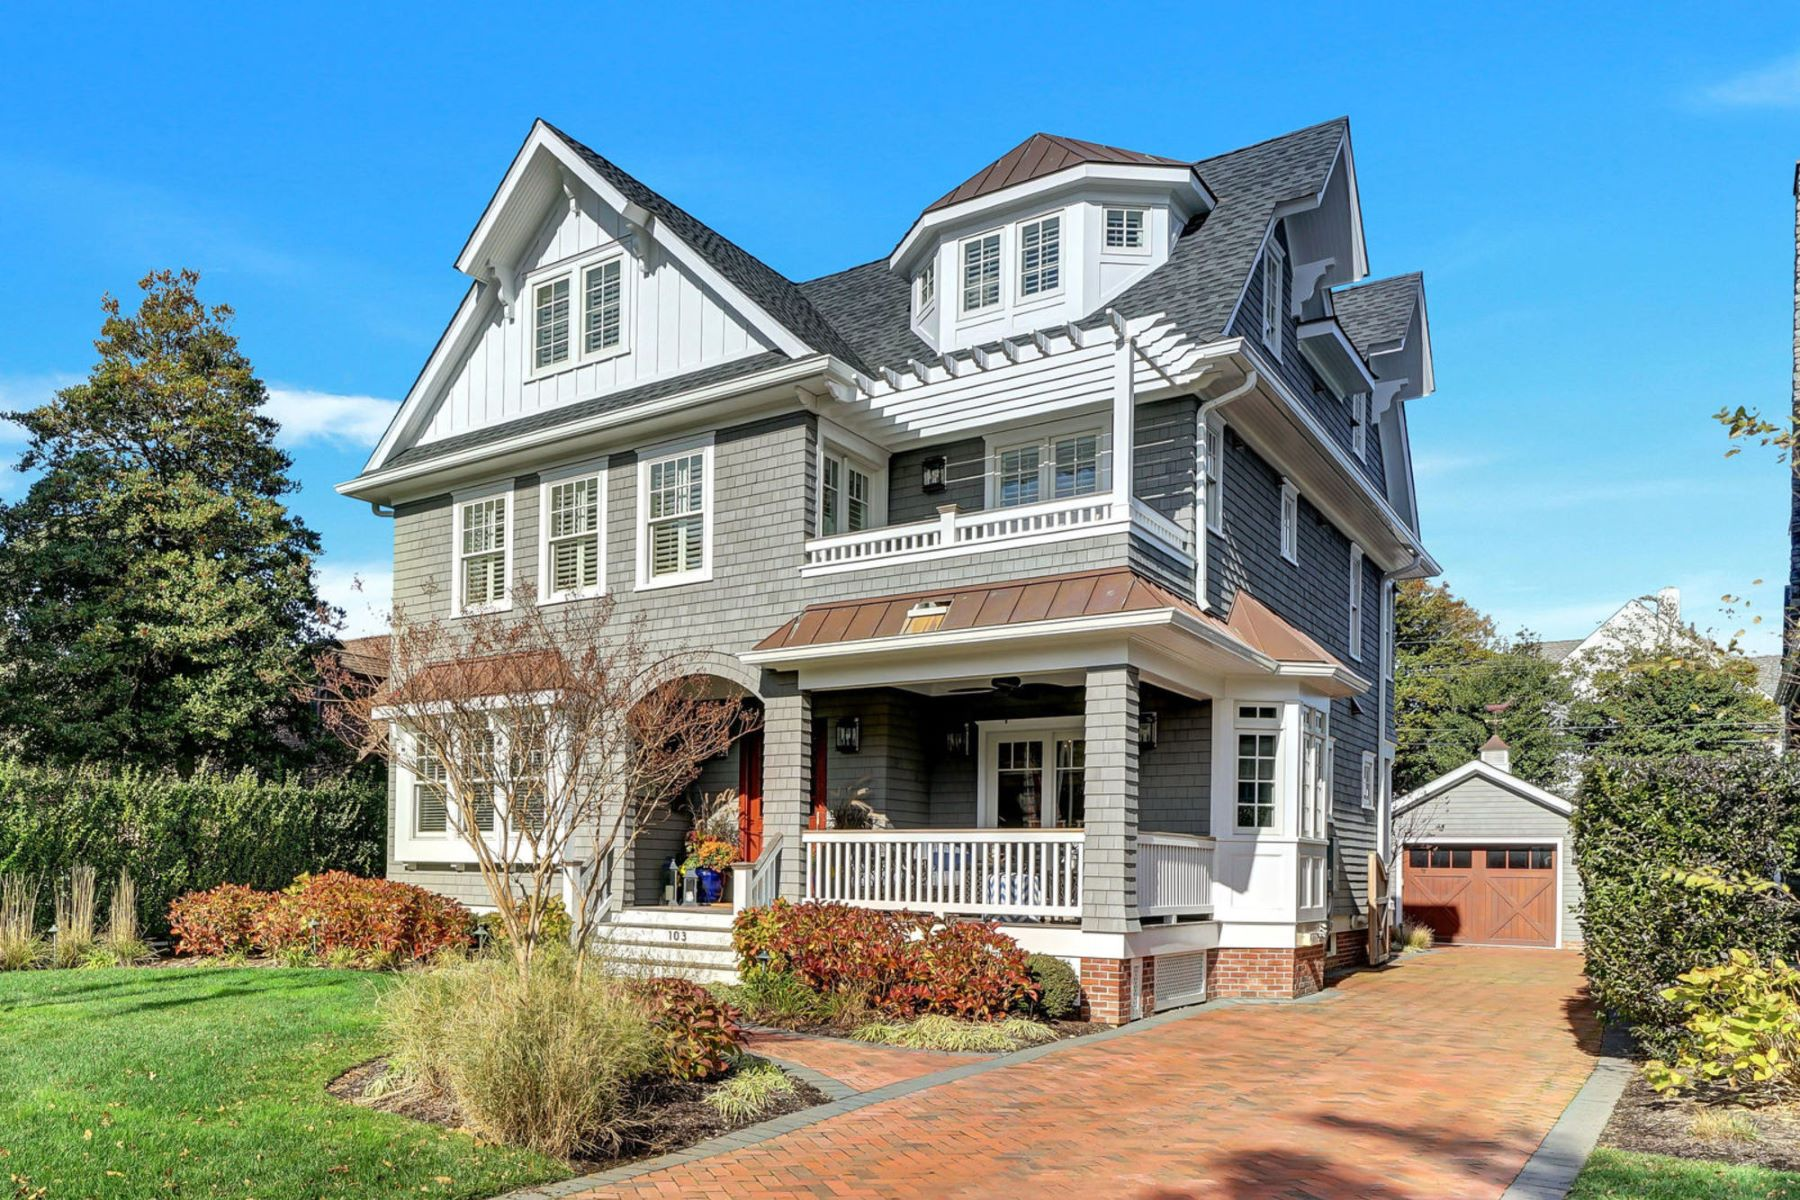 Maison unifamiliale pour l Vente à Unrivaled Beauty and Superb Architecture 103 Philadelphia Boulevard, Sea Girt, New Jersey 08750 États-Unis